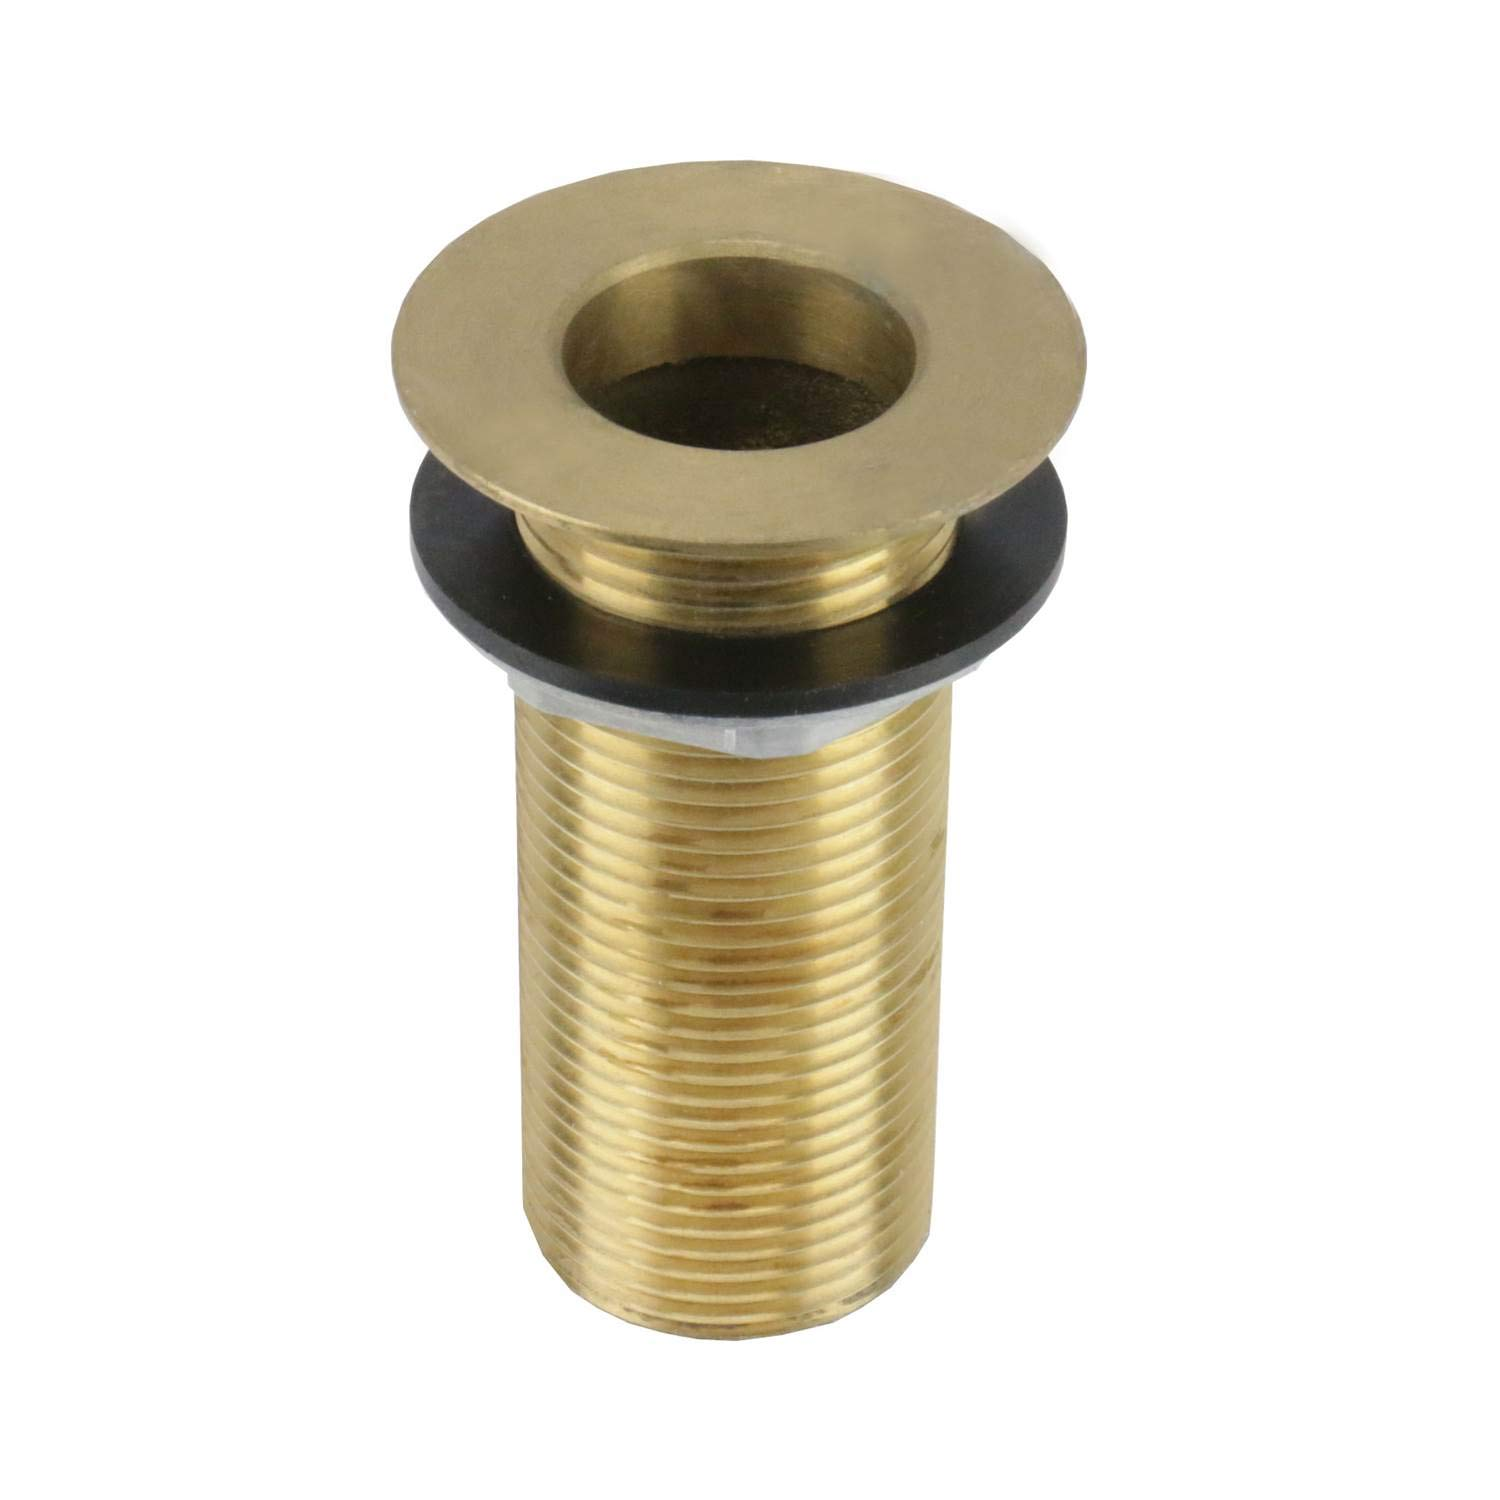 AA Faucet Brass Bar Sink Drain 1'' Nominal Pipe Size, 2'' Diameter Drain Opening (3-1/4'' Length)